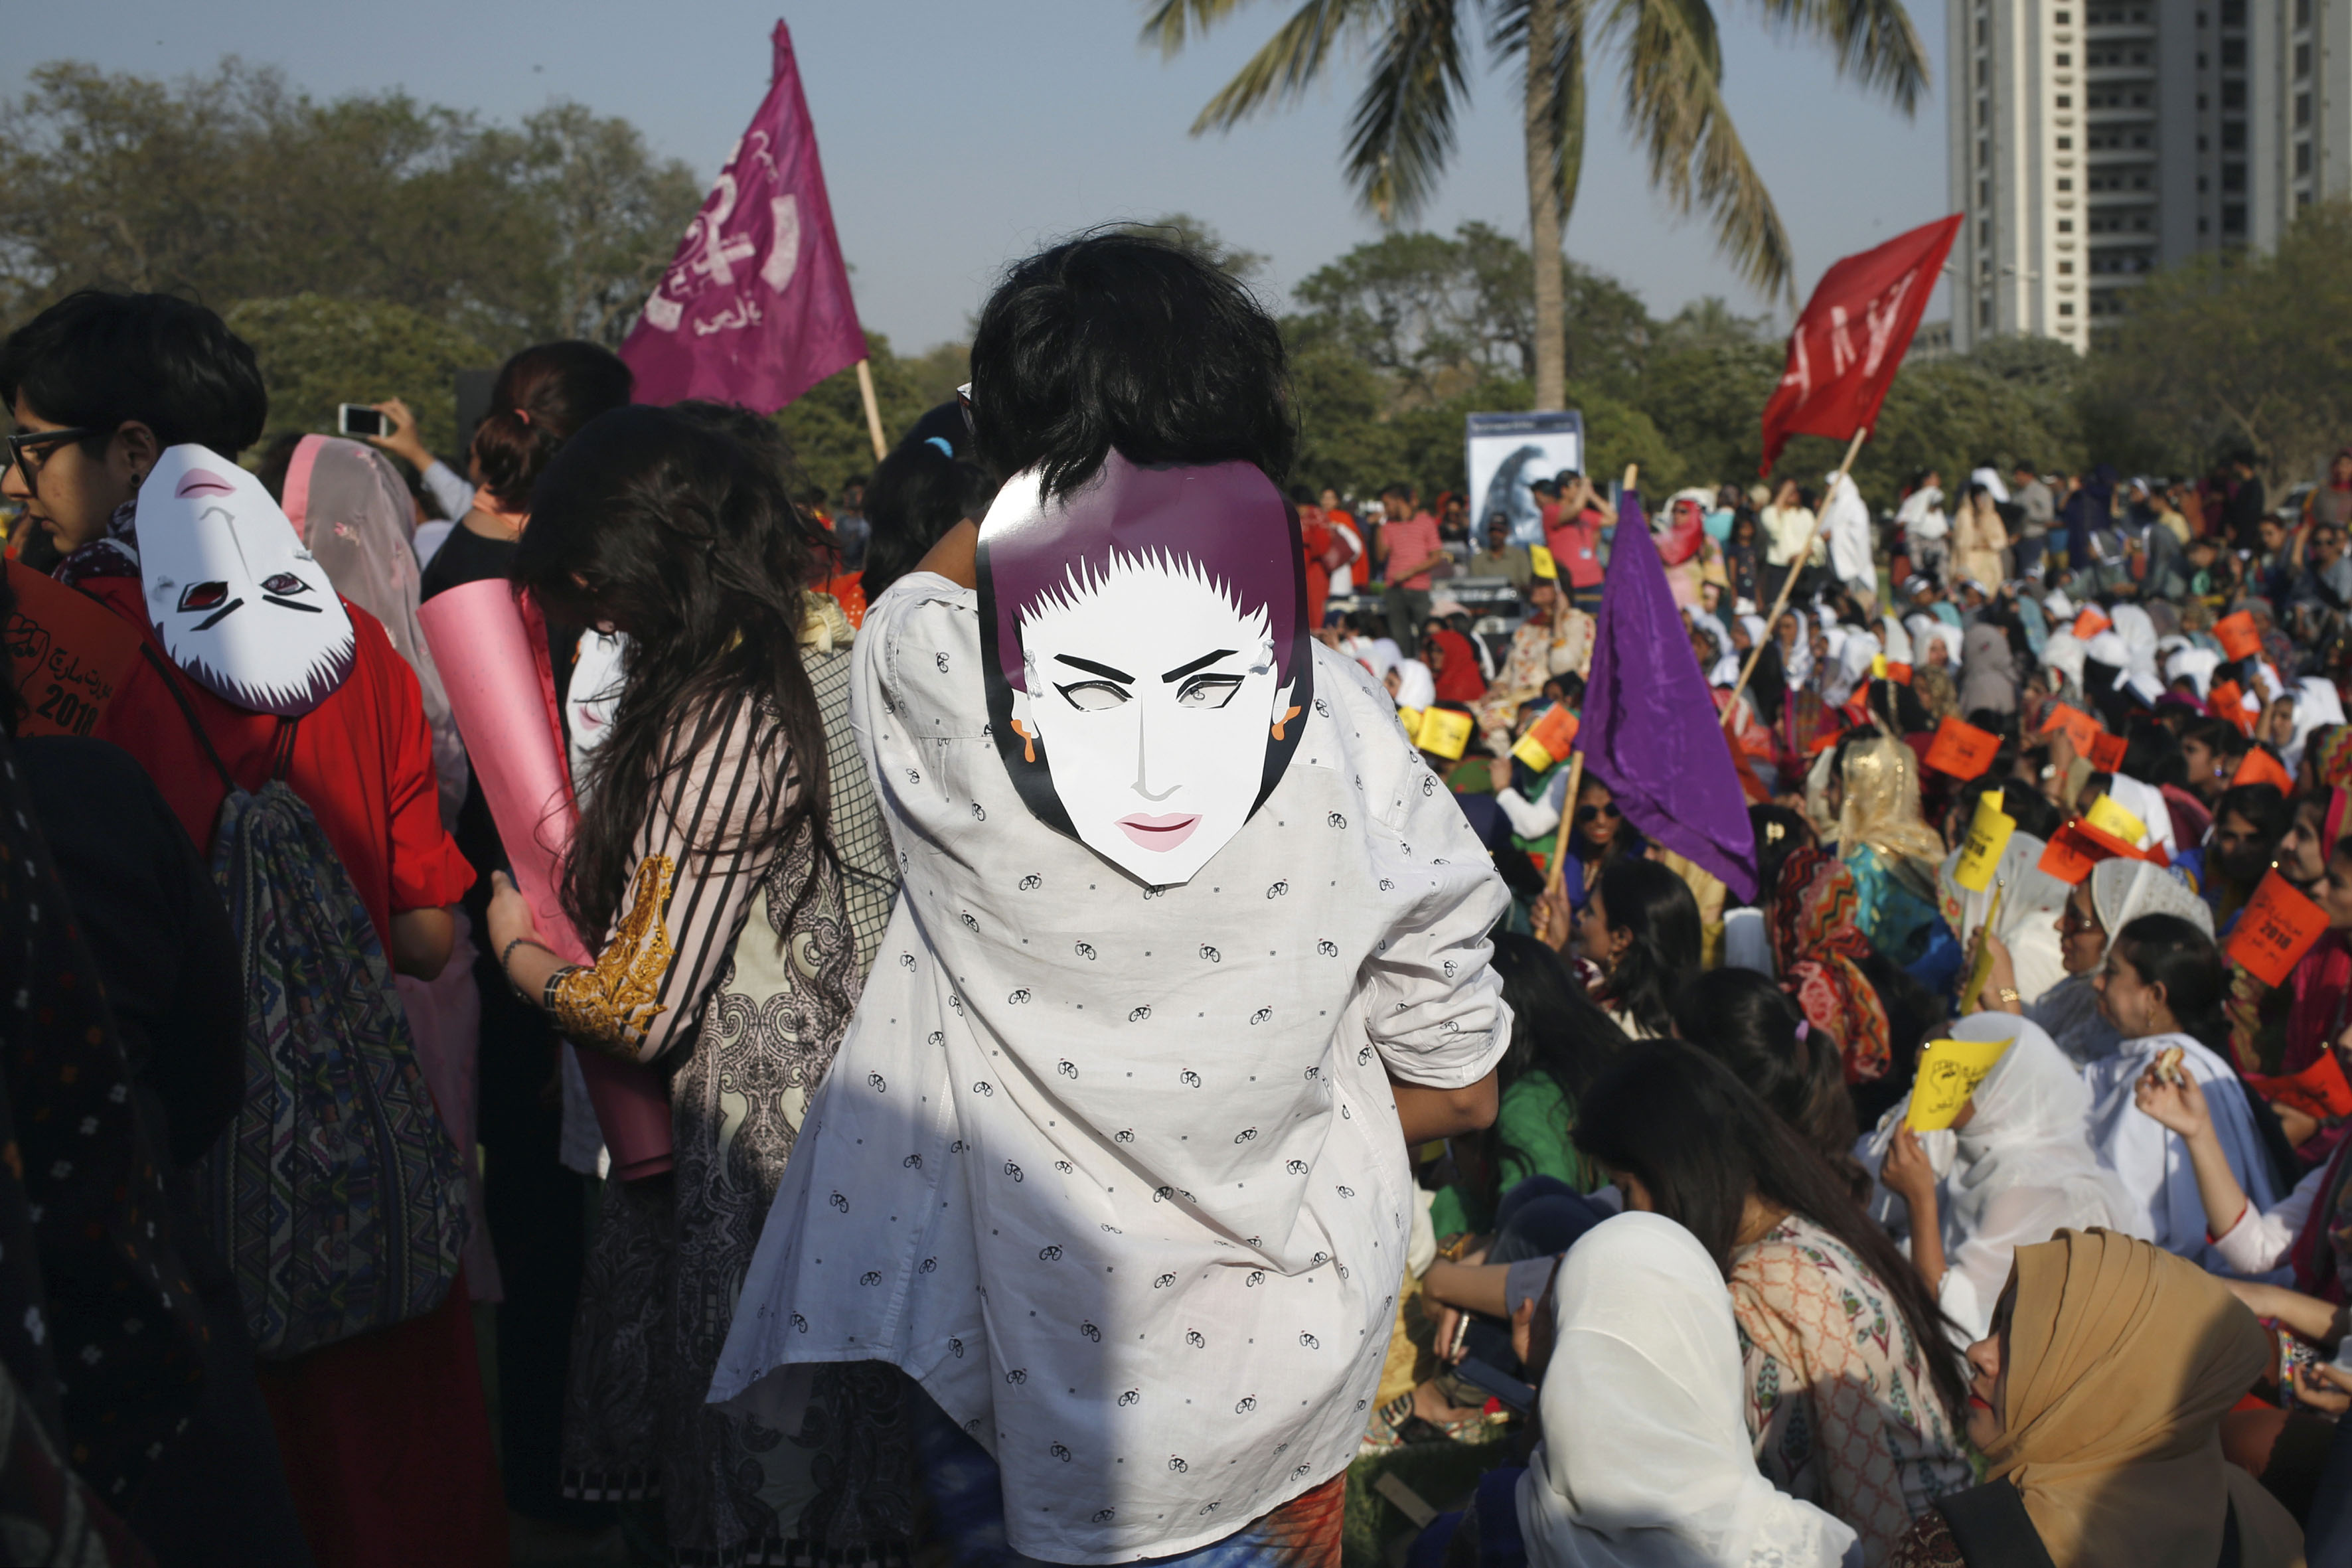 8 March 2018: People wearing masks depicting Qandeel Baloch, the social media celebrity who was strangled in an 'honour killing' in 2016, as they take part in an aurat or women's march in Karachi, Pakistan. (Photograph by Reuters/Akhtar Soomro)